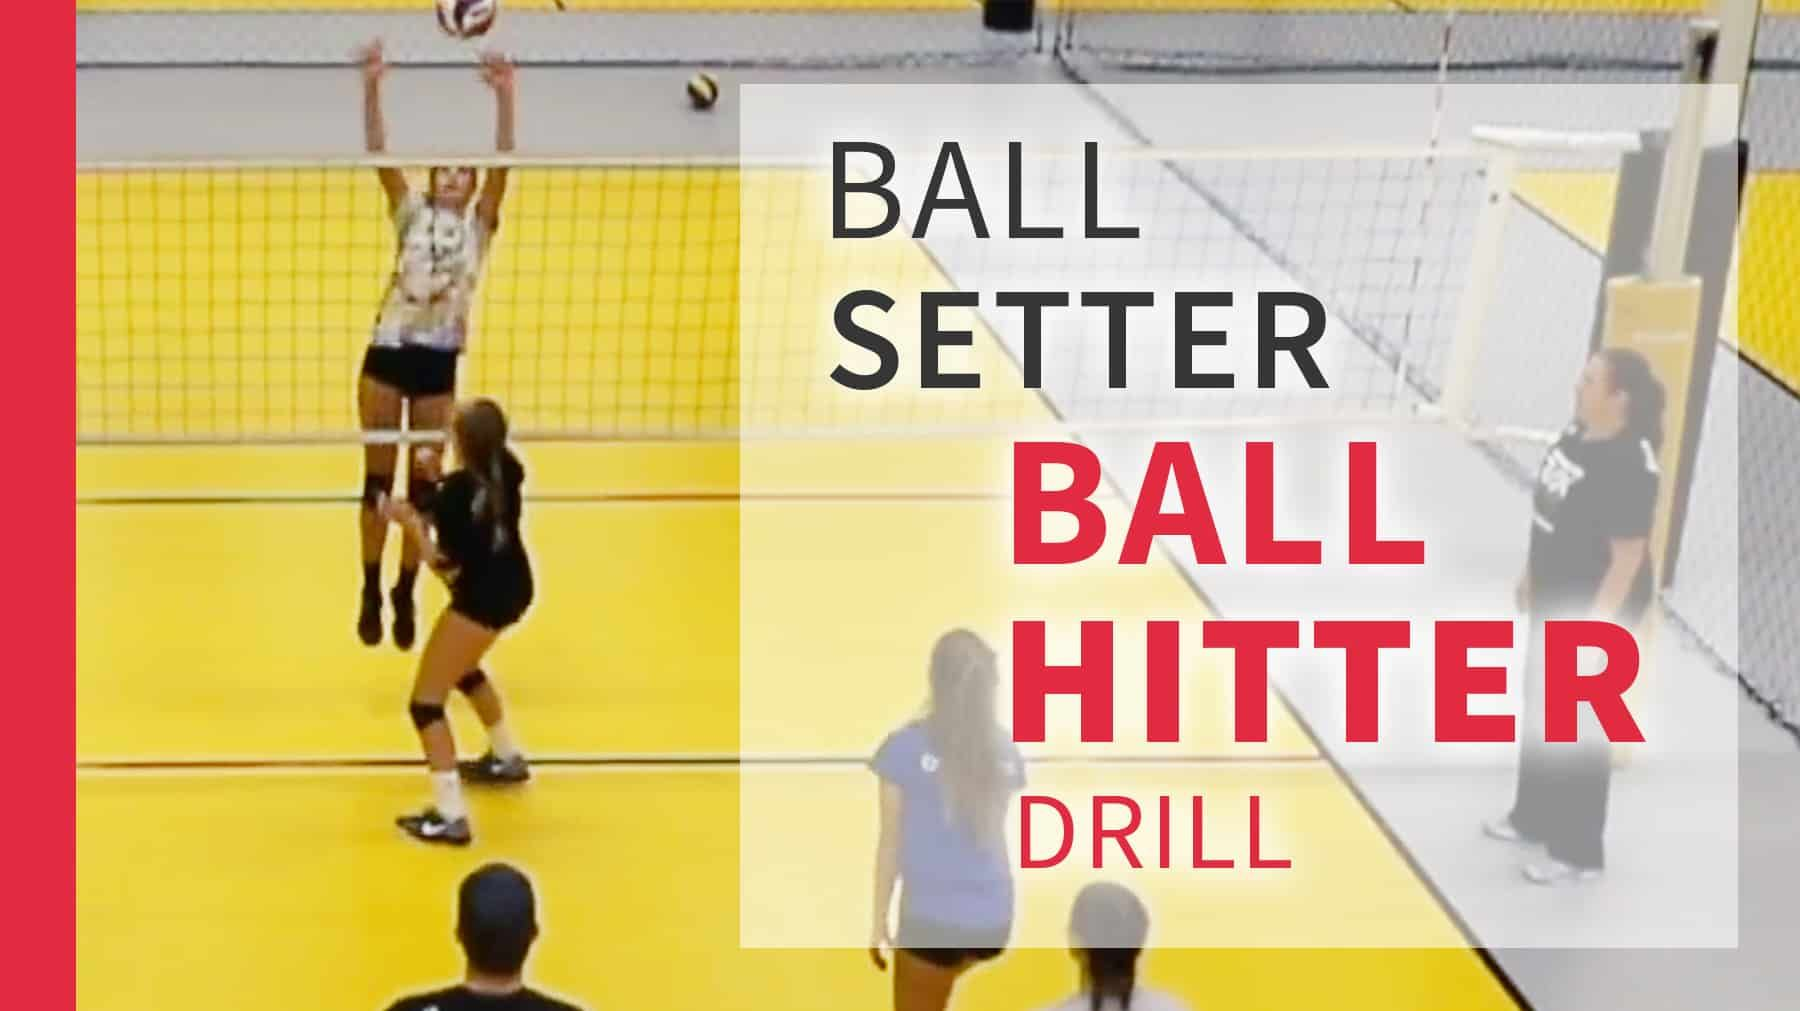 Ball Setter Ball Hitter Drill With Cary Wallin The Art Of Coaching Volleyball Coaching Volleyball Volleyball Skills Volleyball Practice